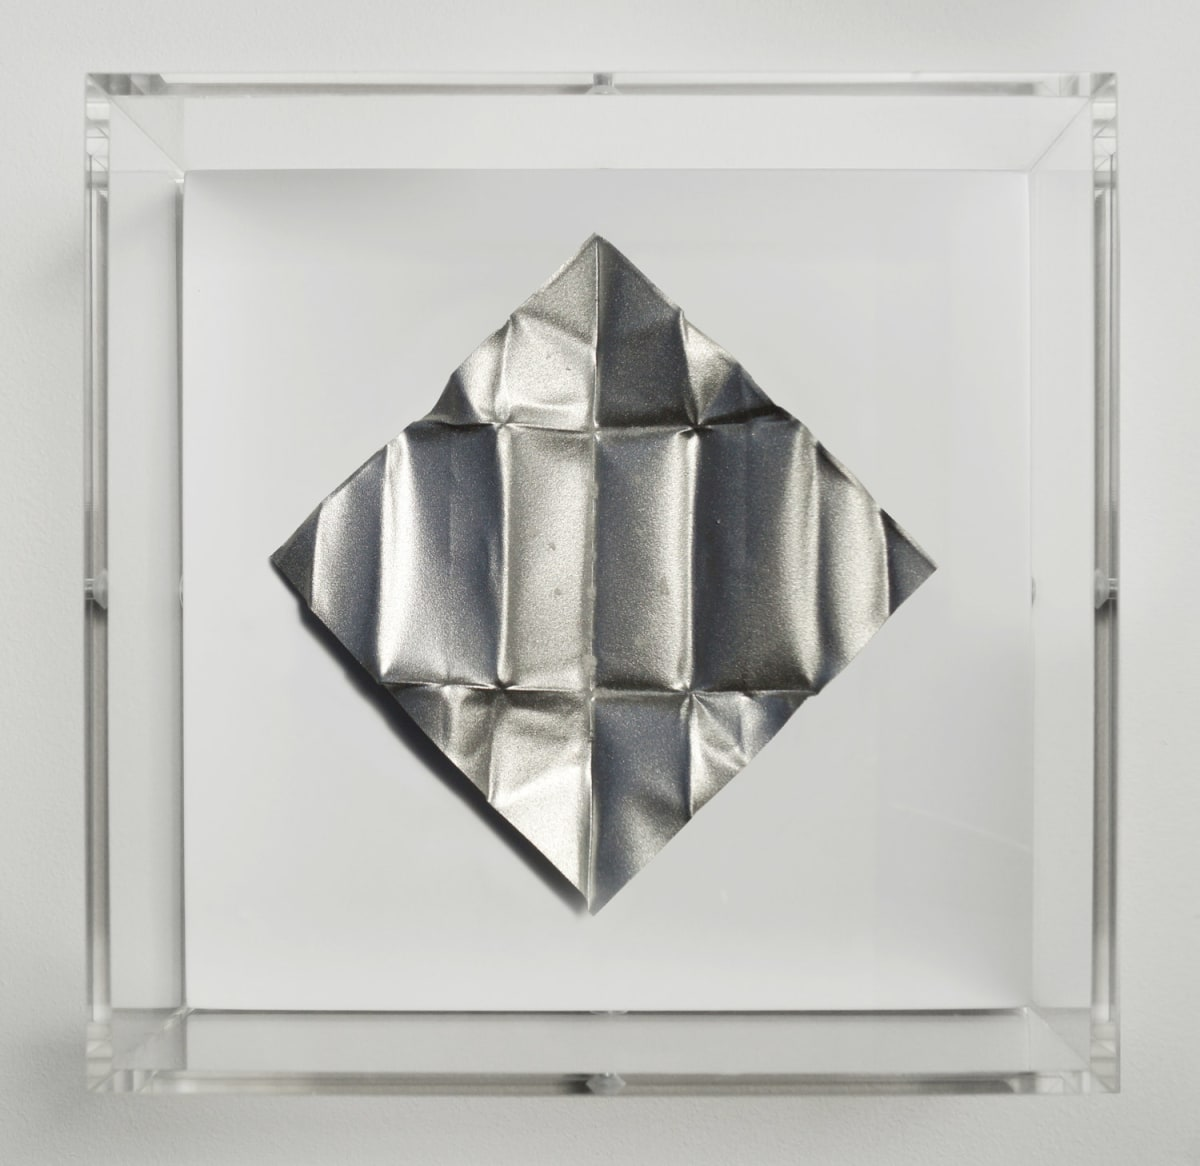 Mat Collishaw The Release - Silver Dollar, 2018 Diamond dust, folded aluminium, wood, acrylic, paint FRAMED 18.5 x 18.5 x 6.5 cm Edition of 10 Signed and numbered